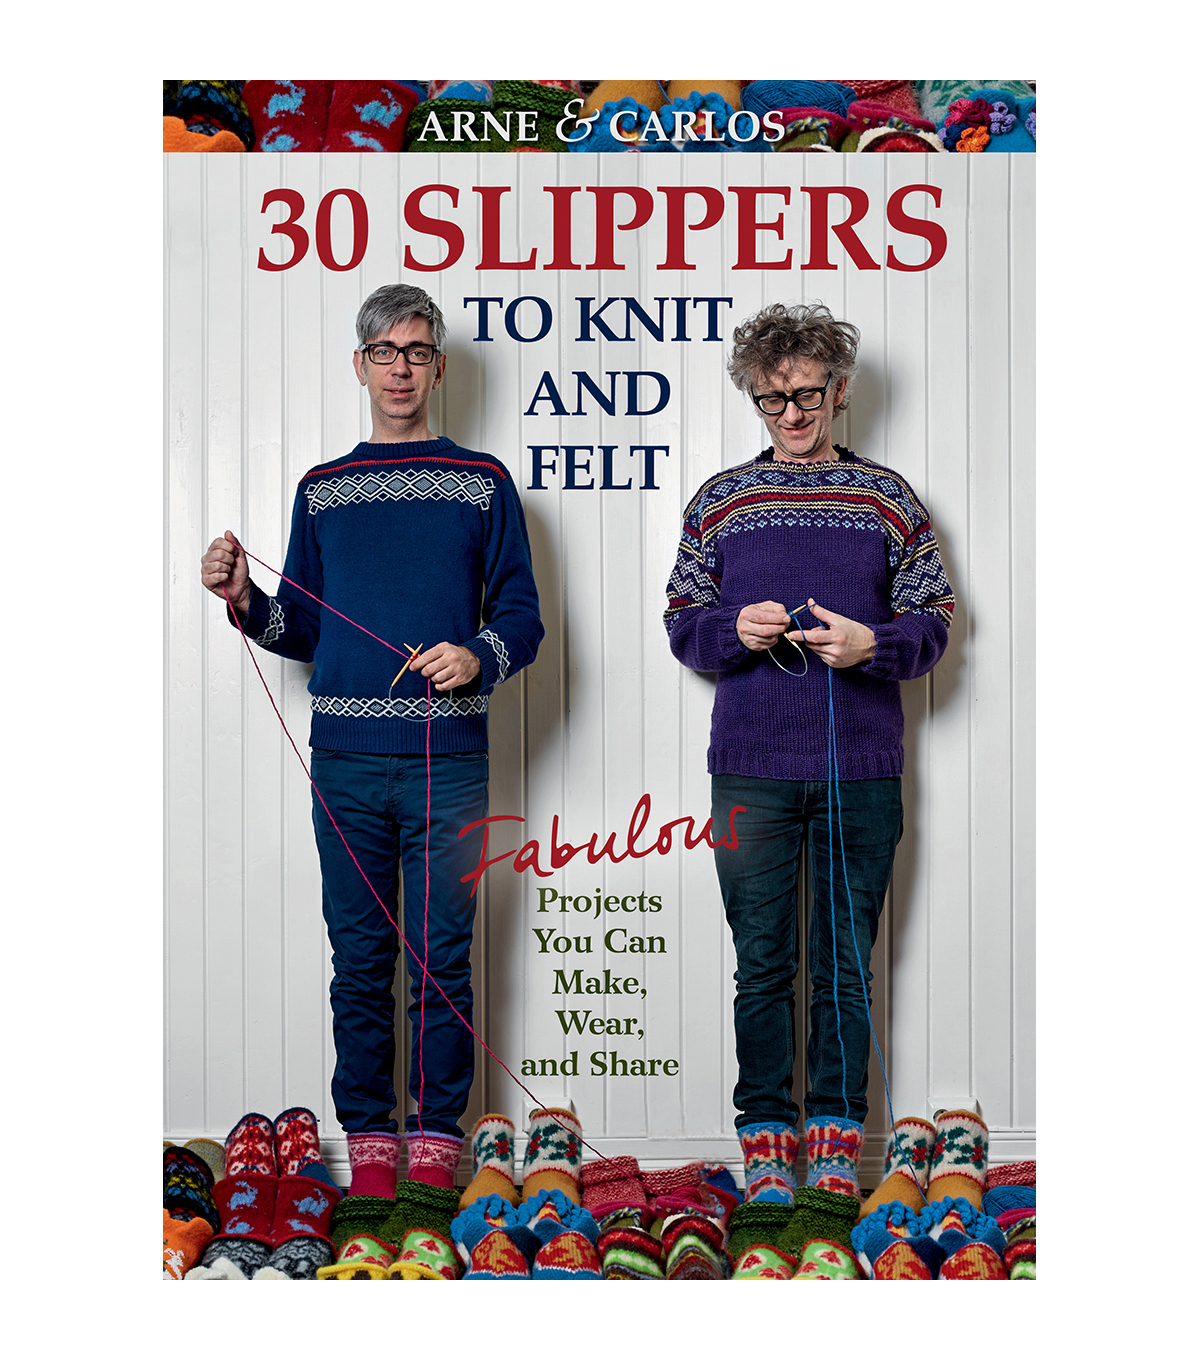 Arnie and Carlos 30 Slippers To Knit And Felt Knitting Book